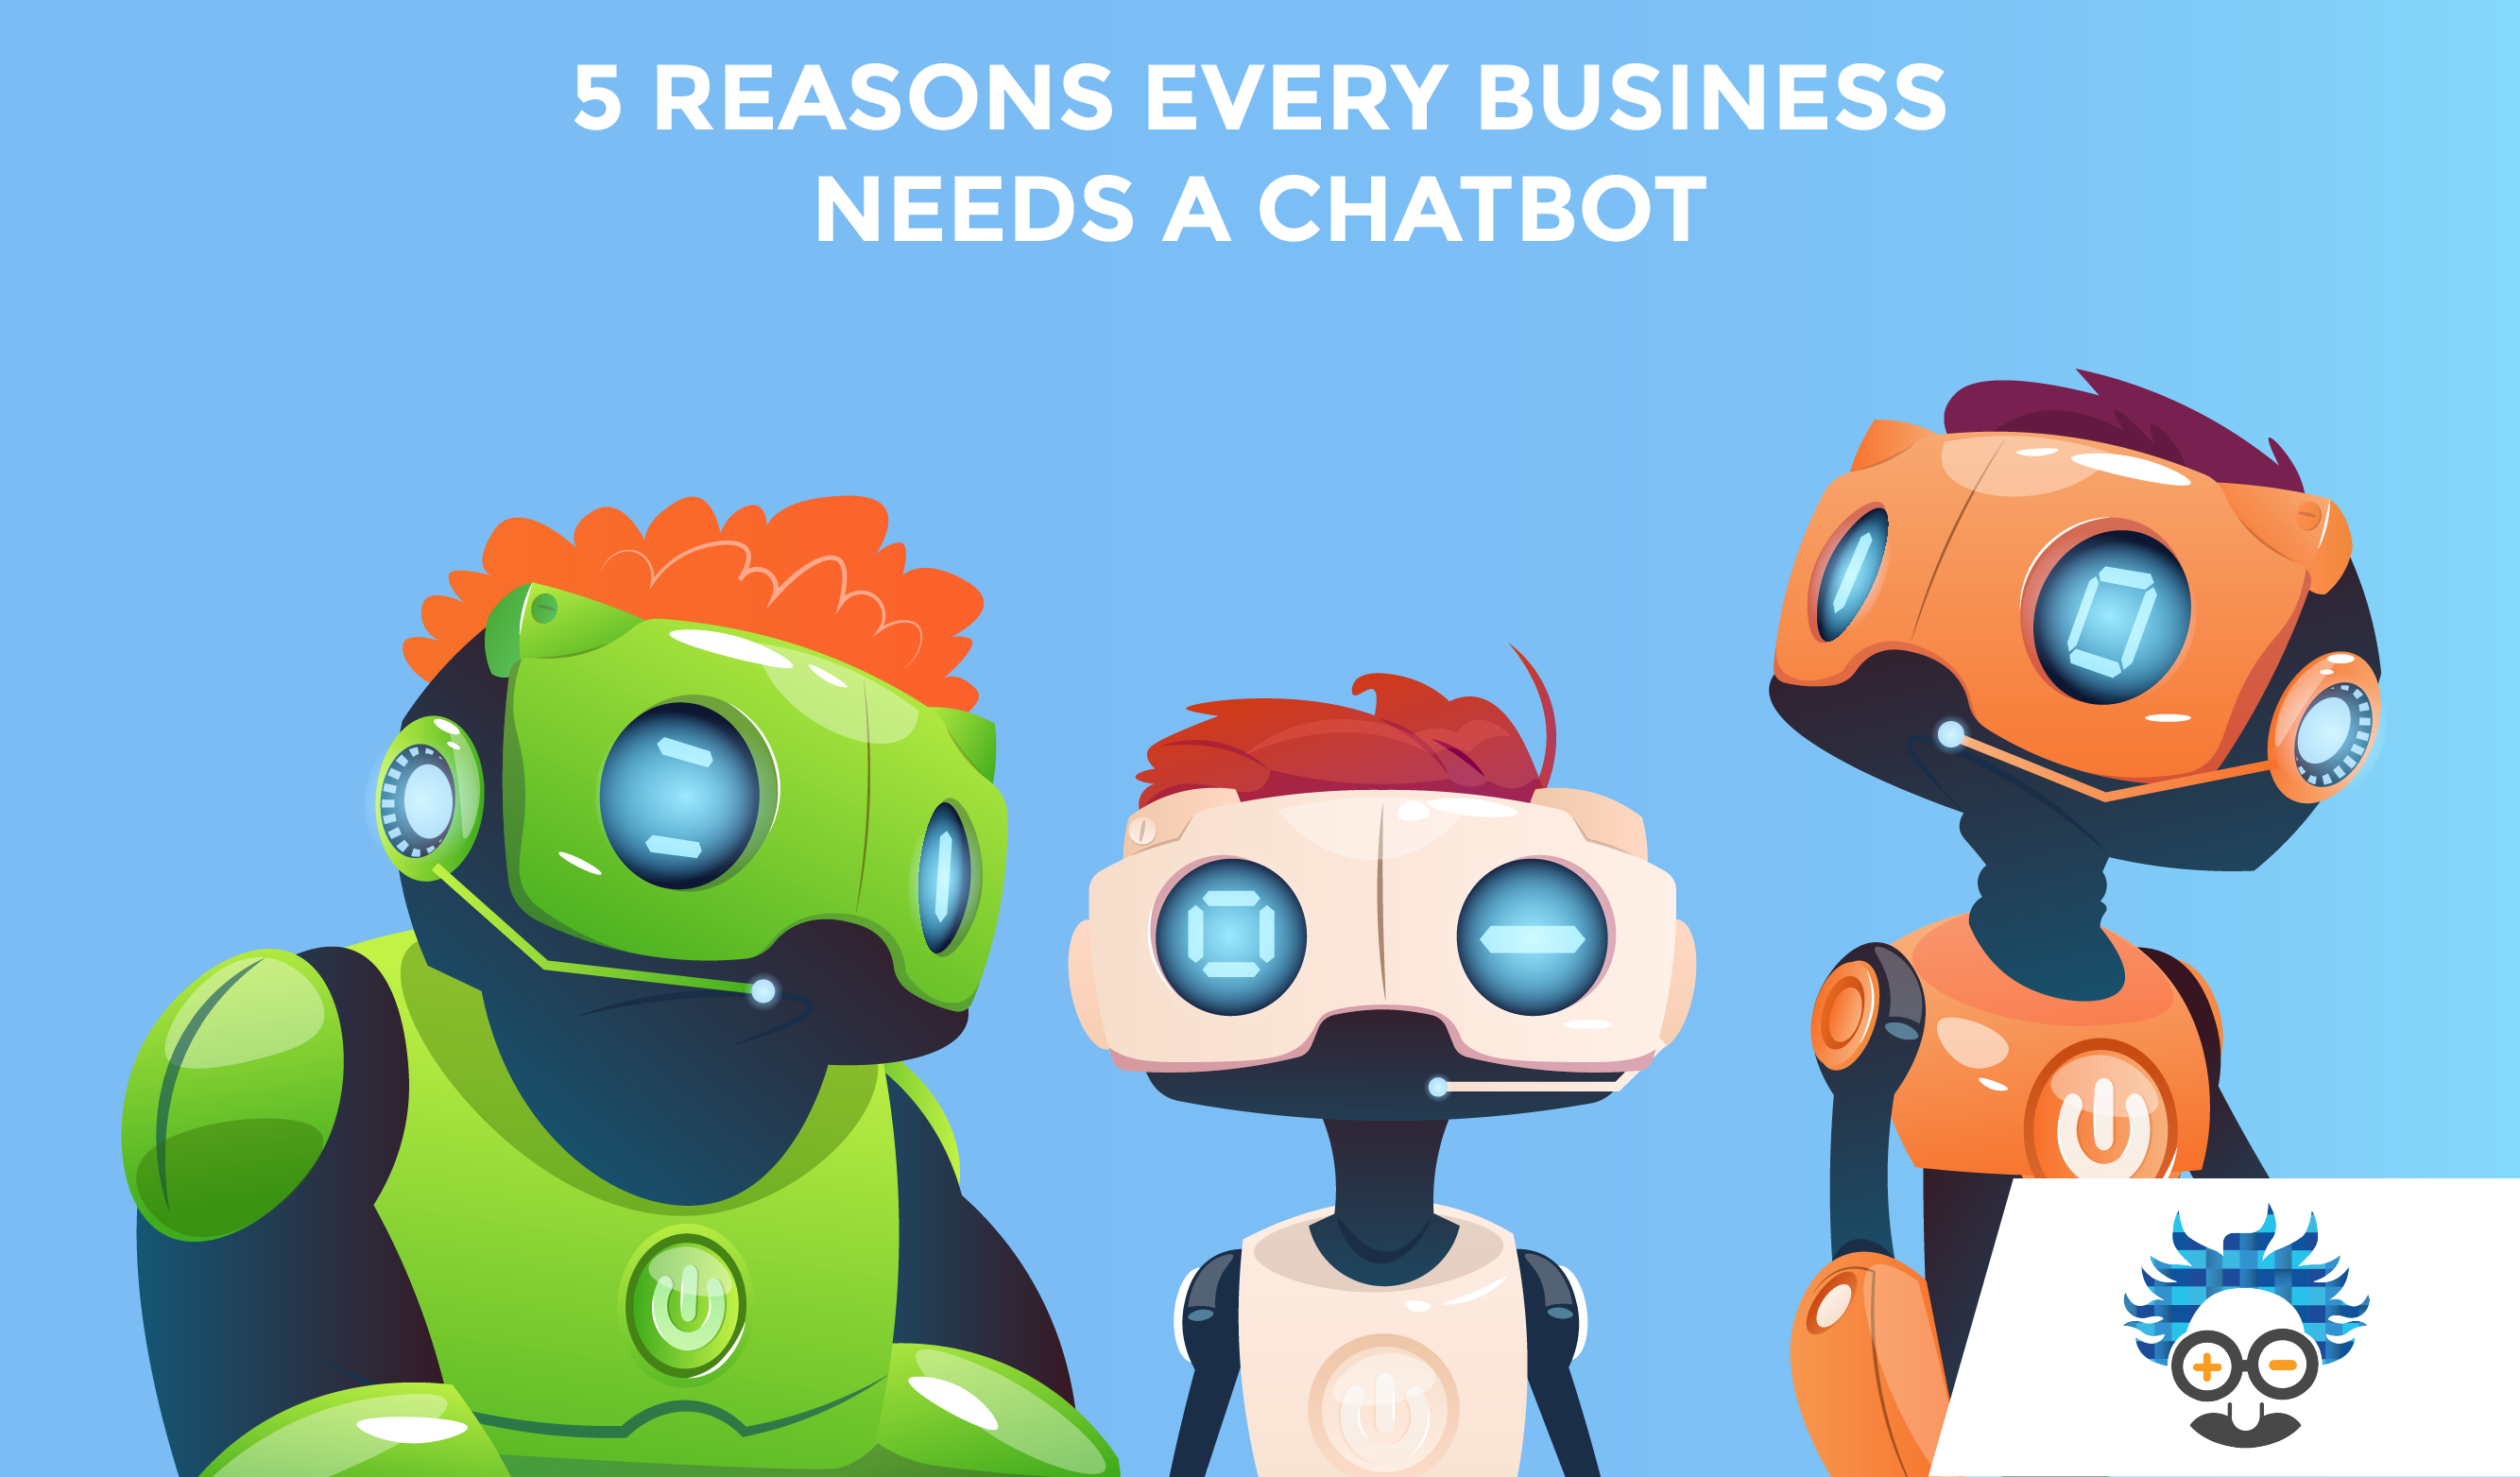 chatbot reasons marketing business